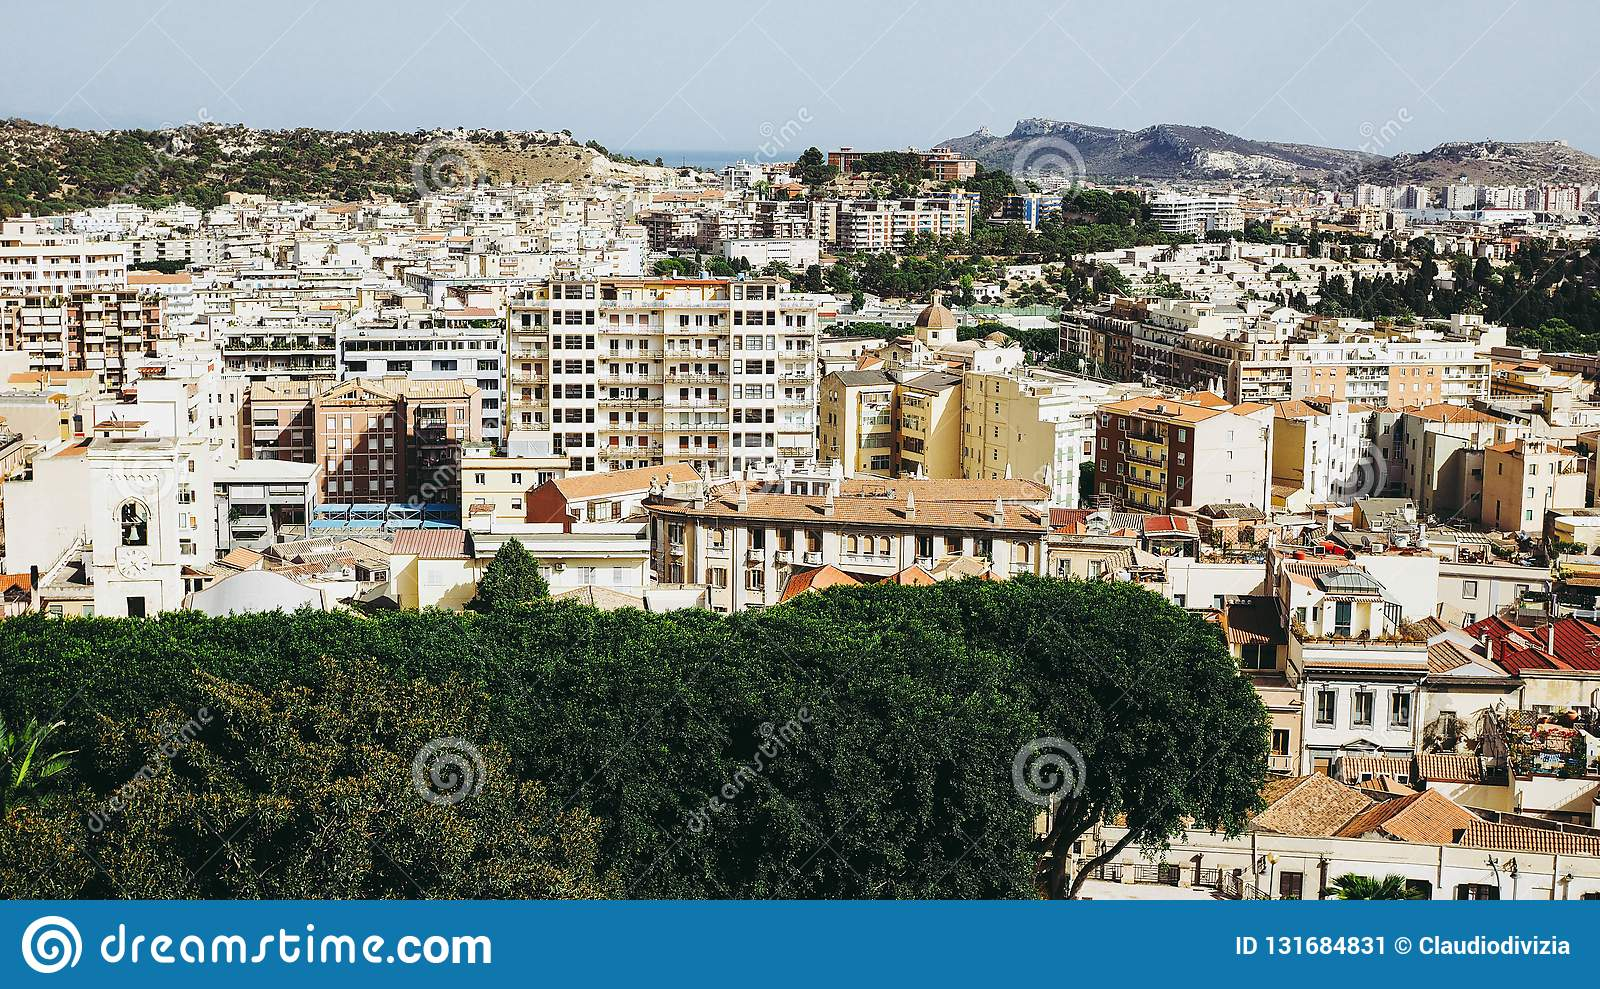 Aerial view of Cagliari, Italy